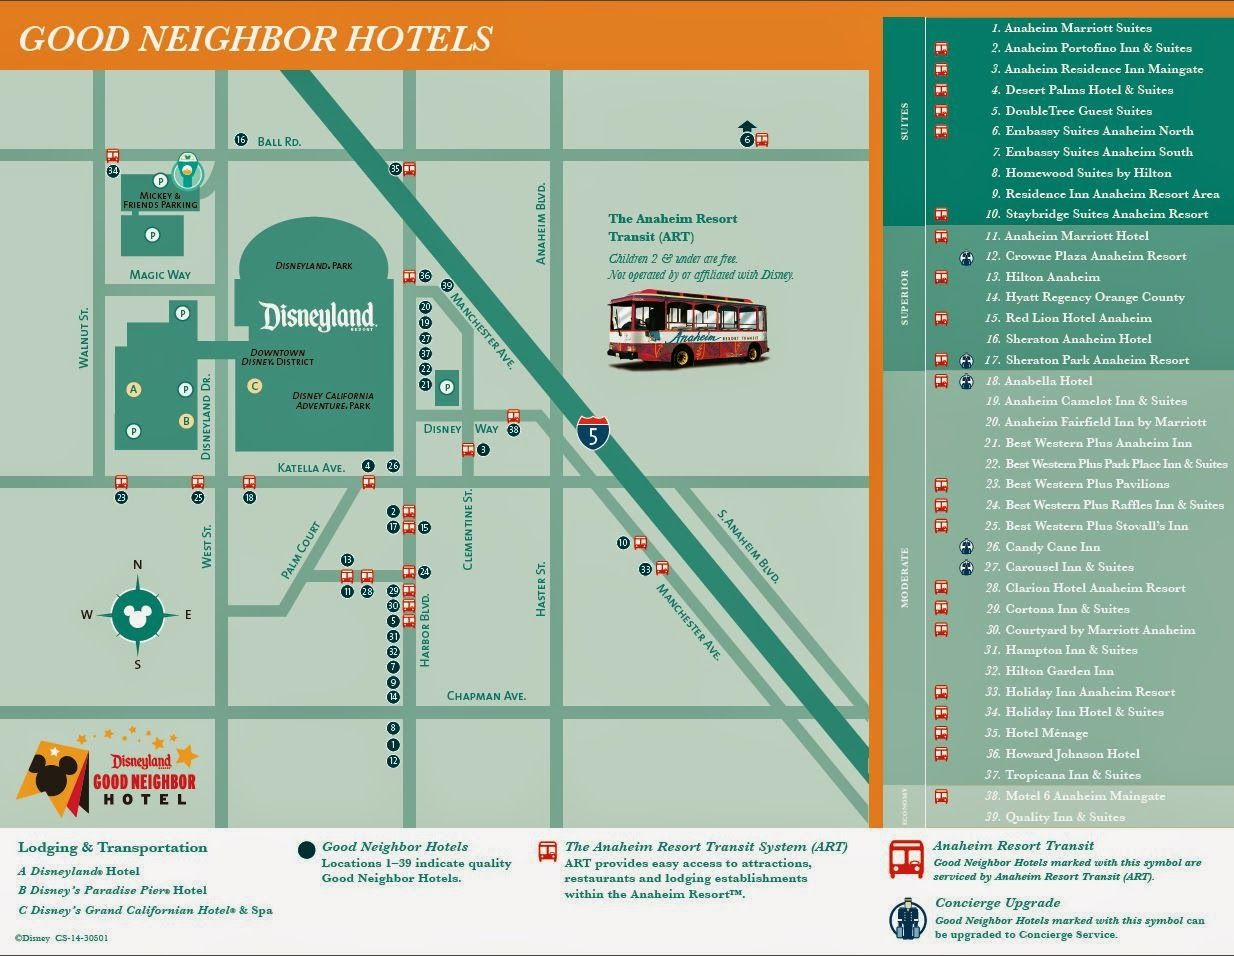 Disneyland Good Neighbor Hotel Map Hotels Fitness And